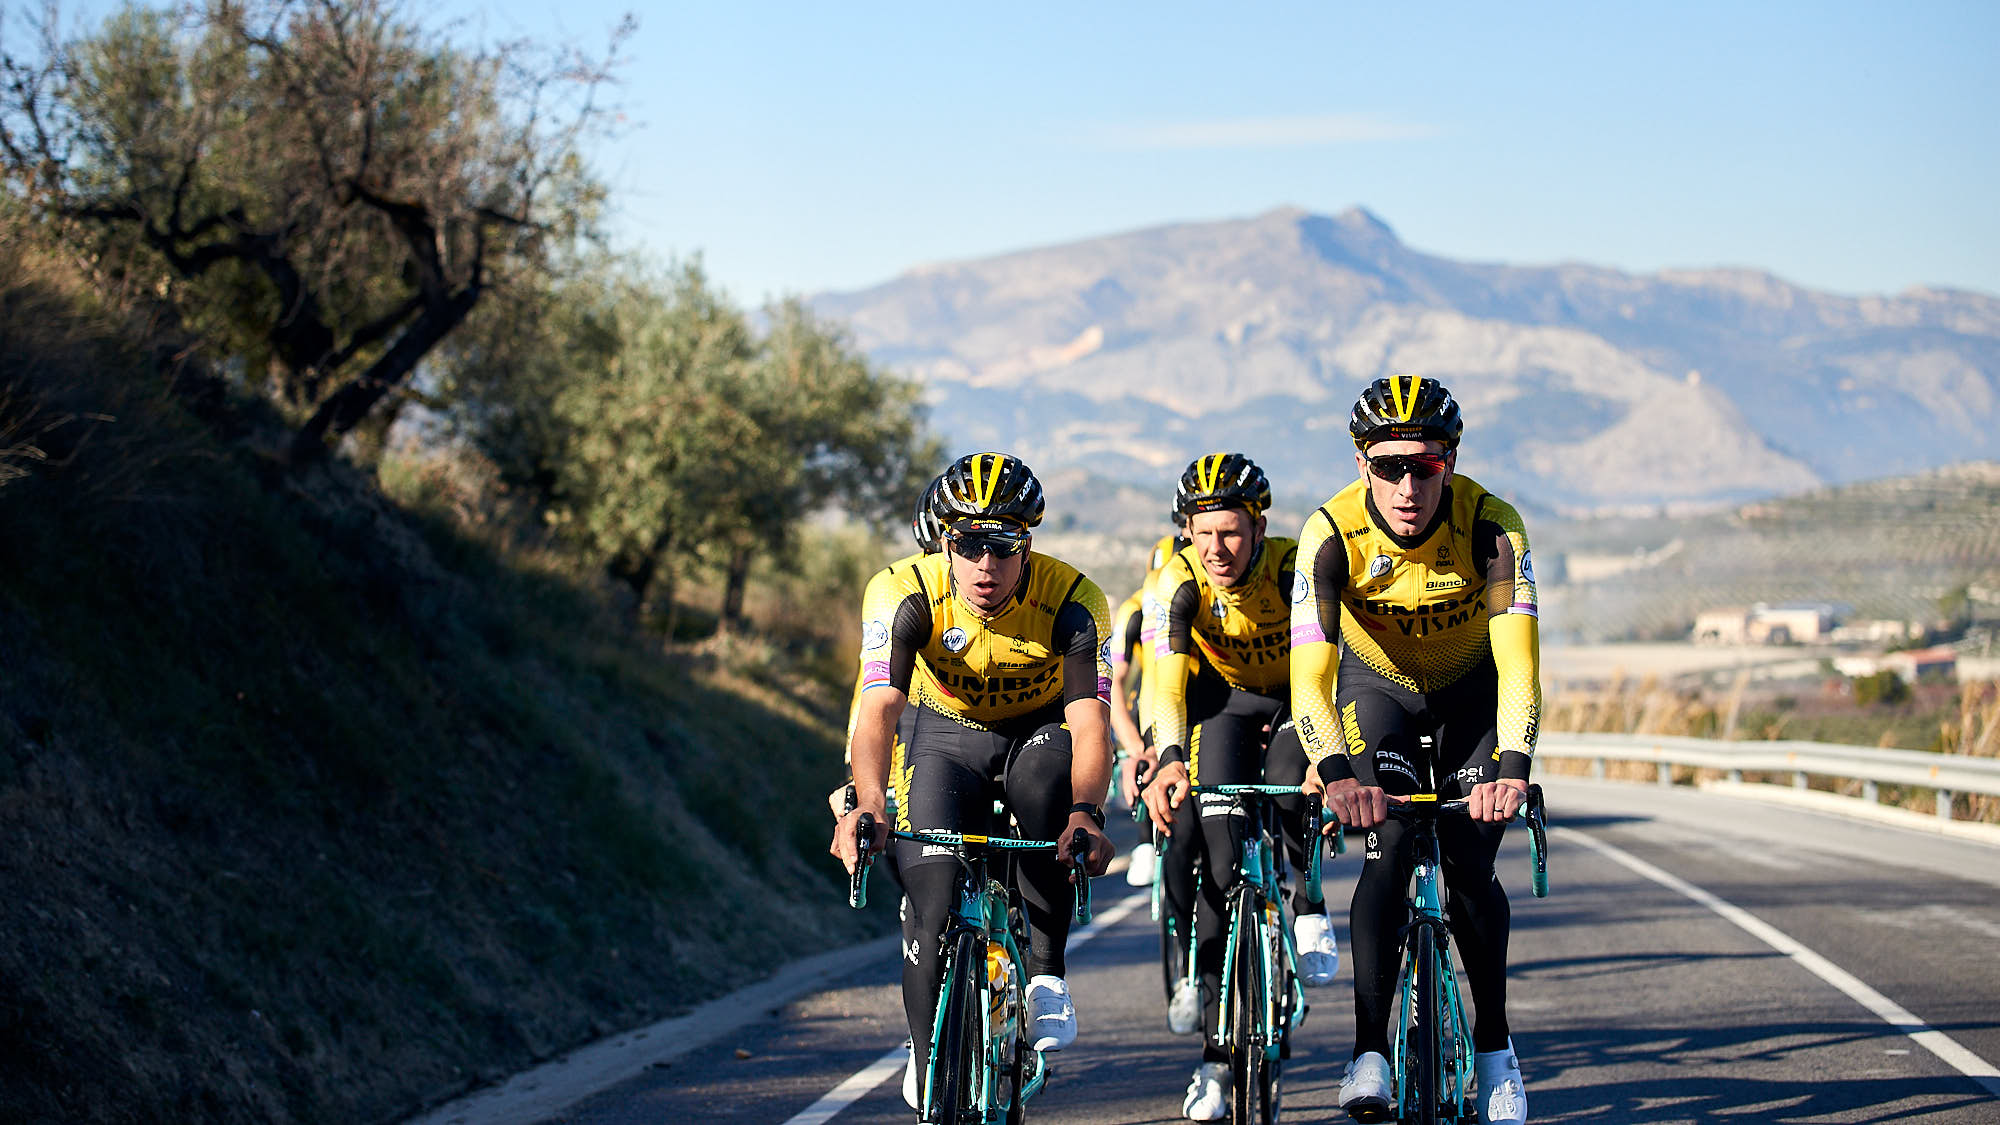 Jumbo-Visma riders during training in Spain